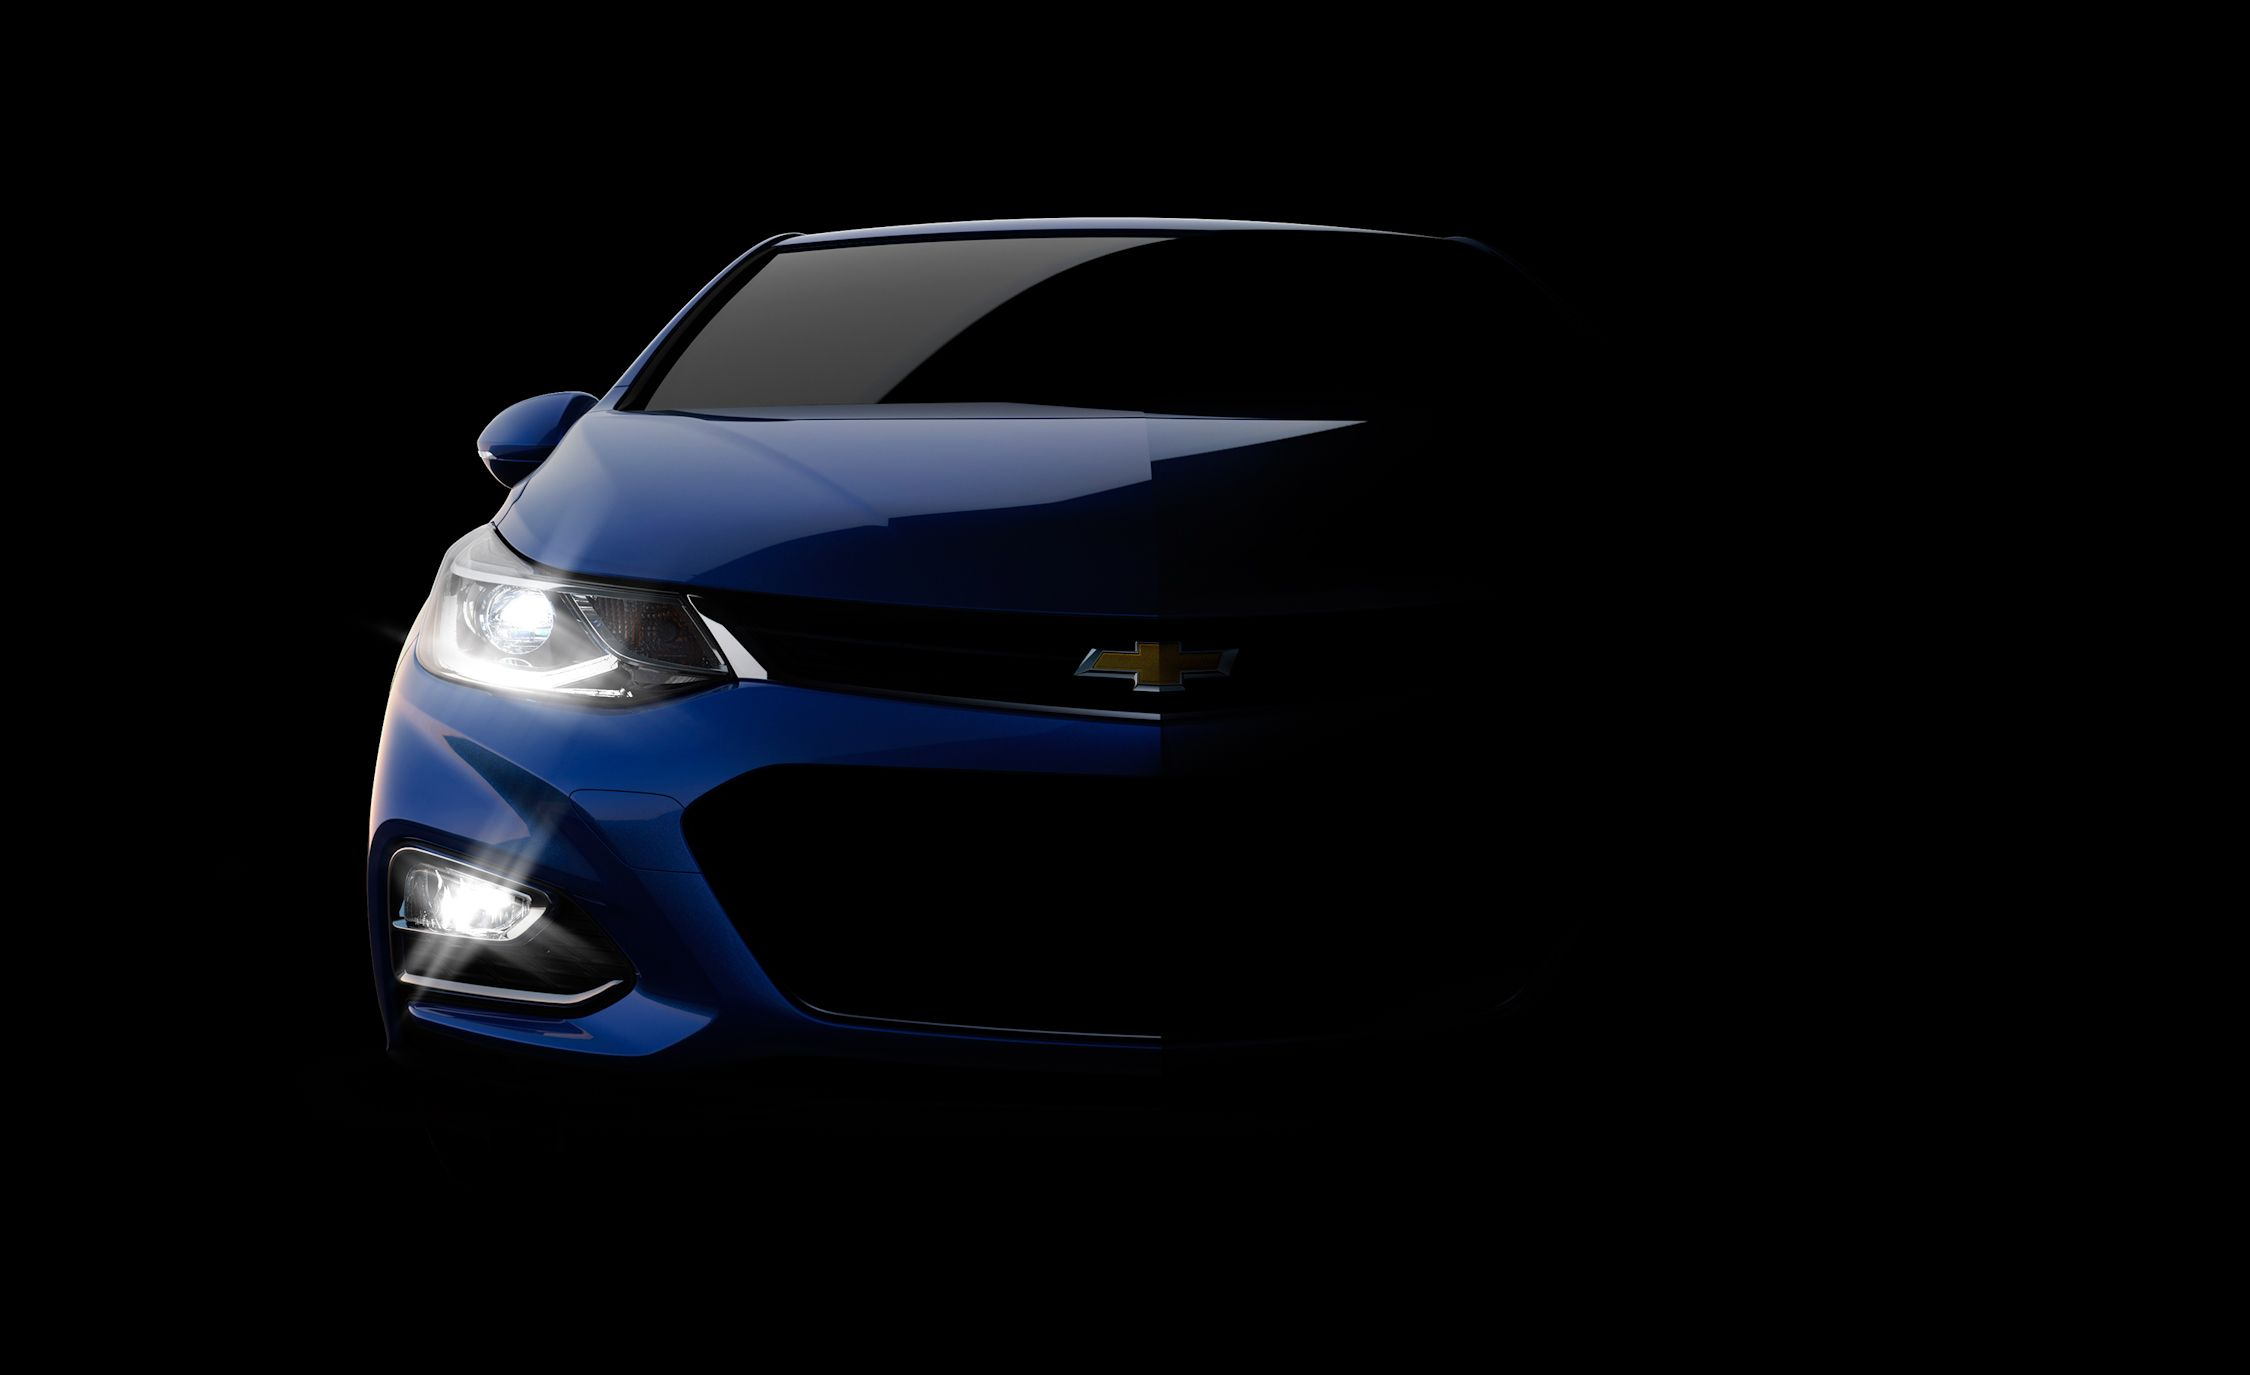 2016 Chevrolet Cruze and Cruze Limited Pricing - News - Car and Driver